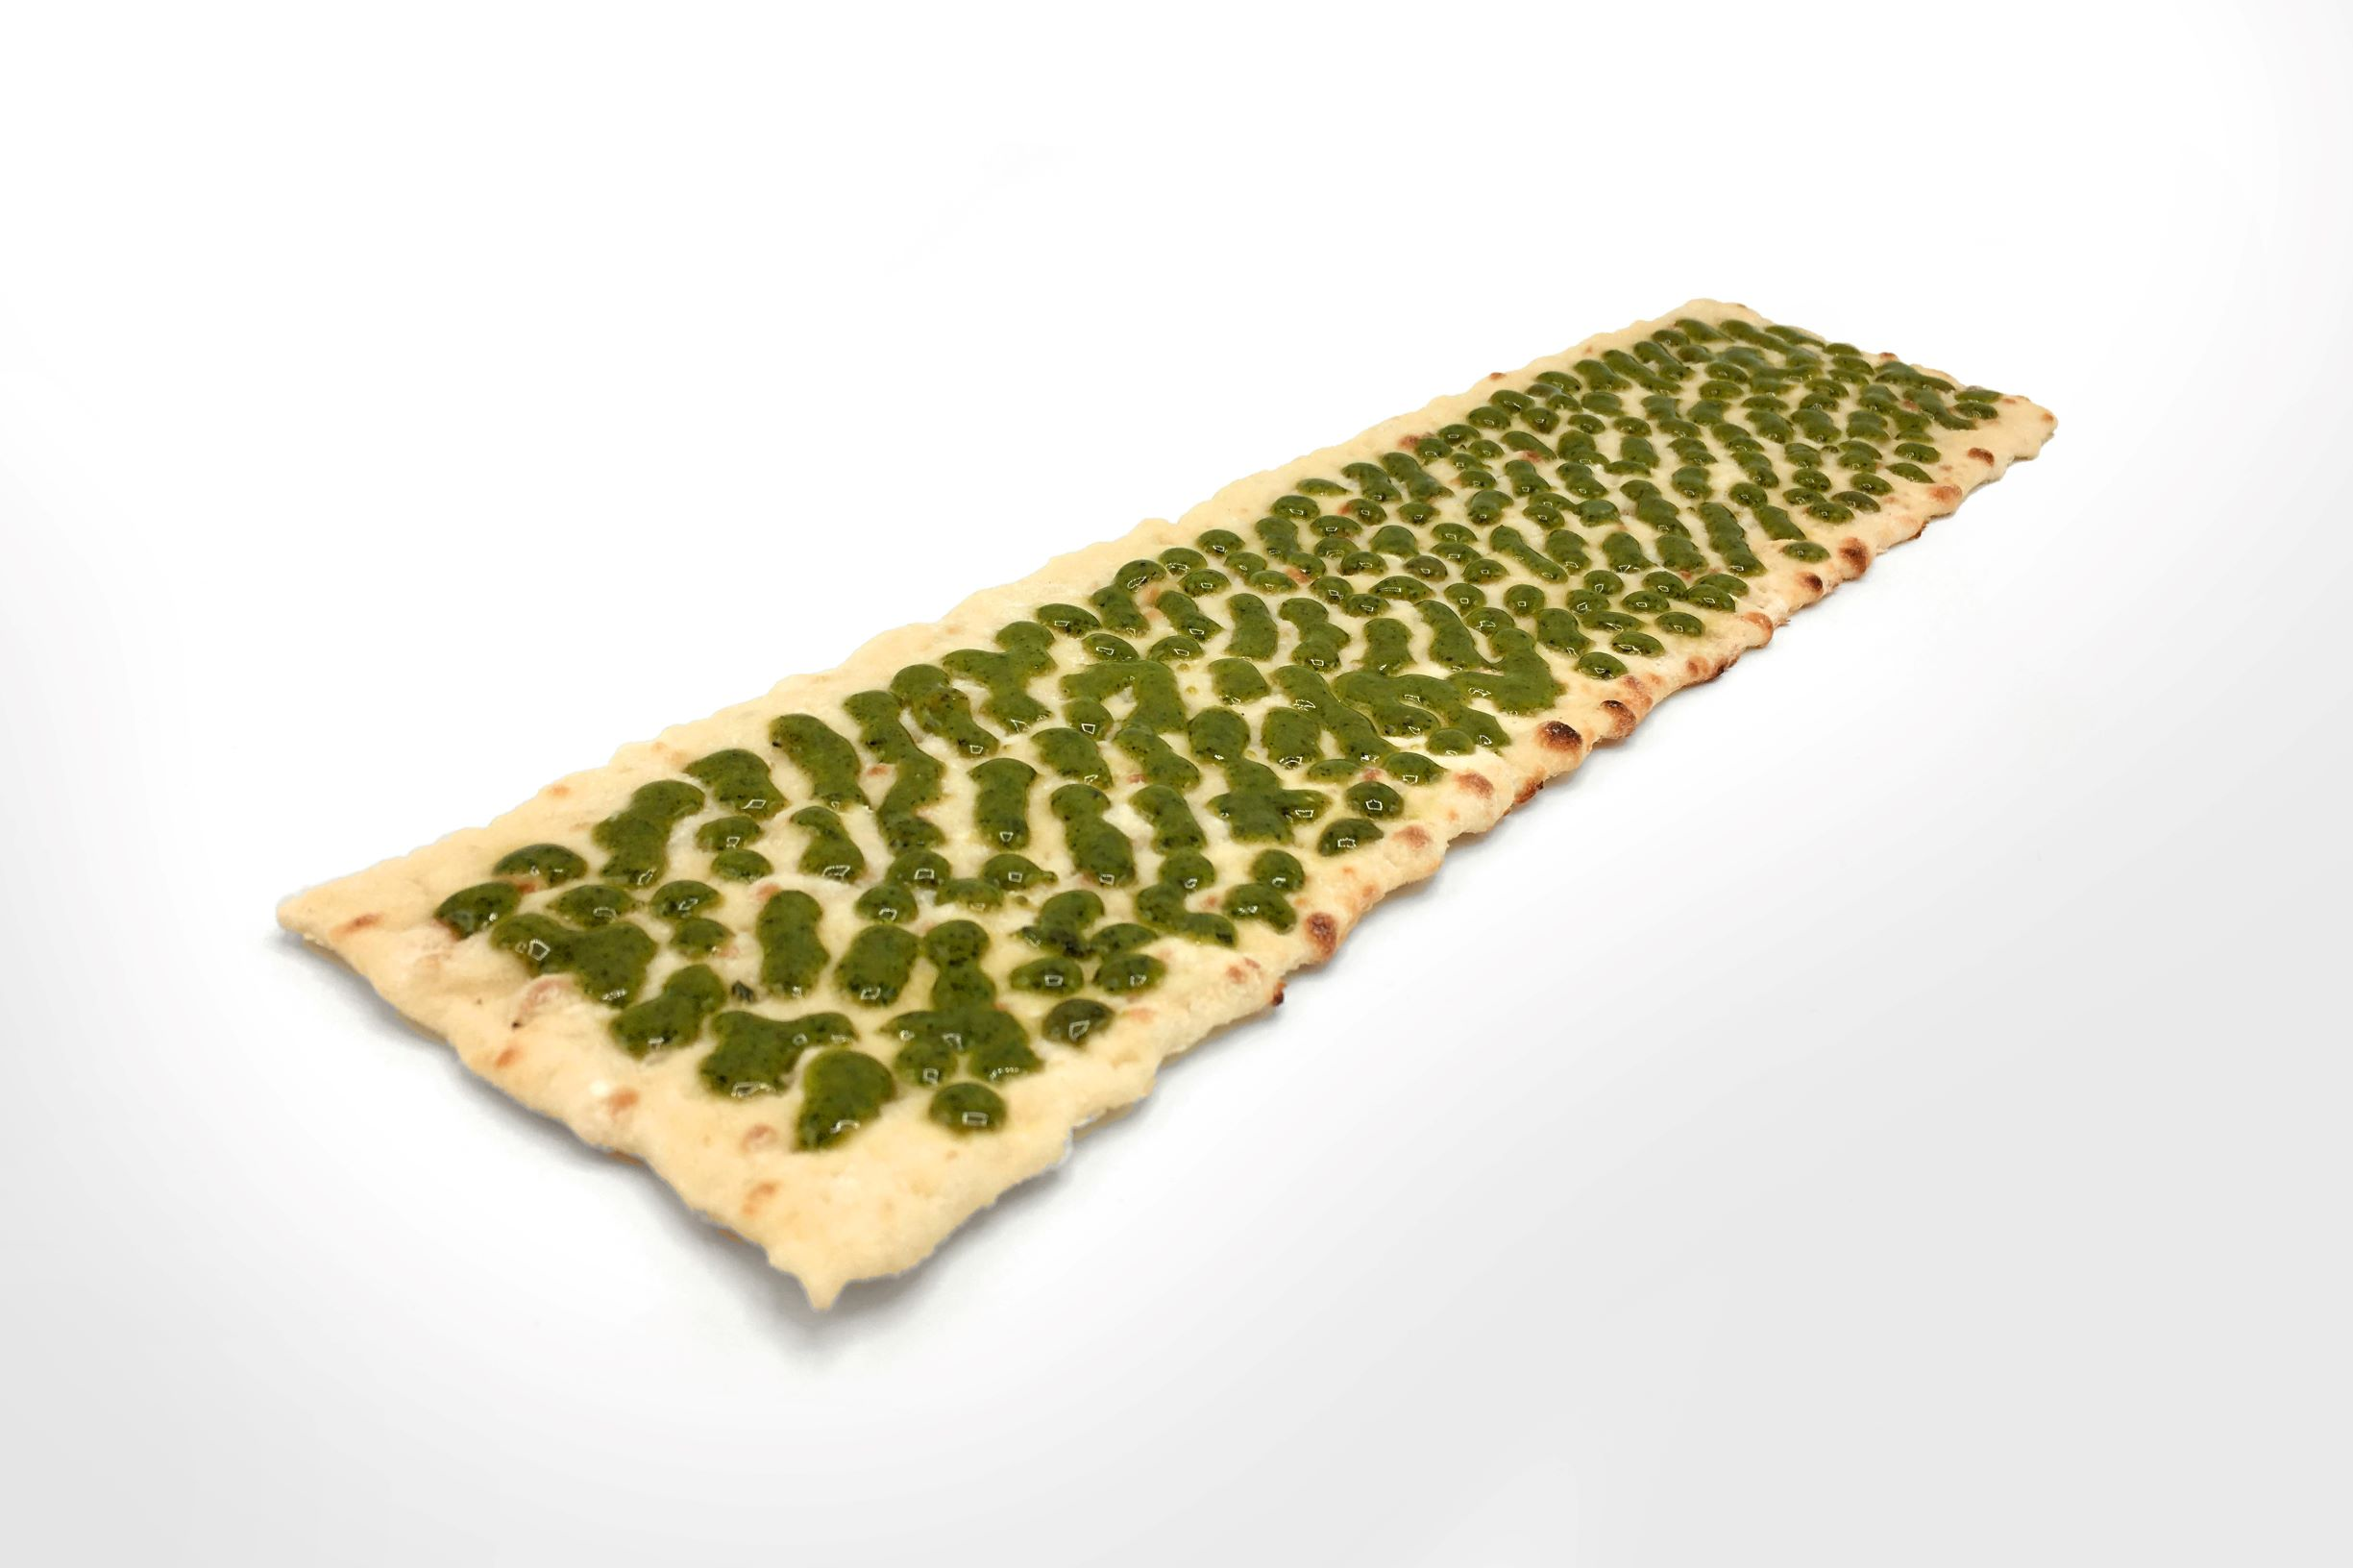 Flatbread with pesto sauce evenly applied by FoodJet sauce depositor.jpg